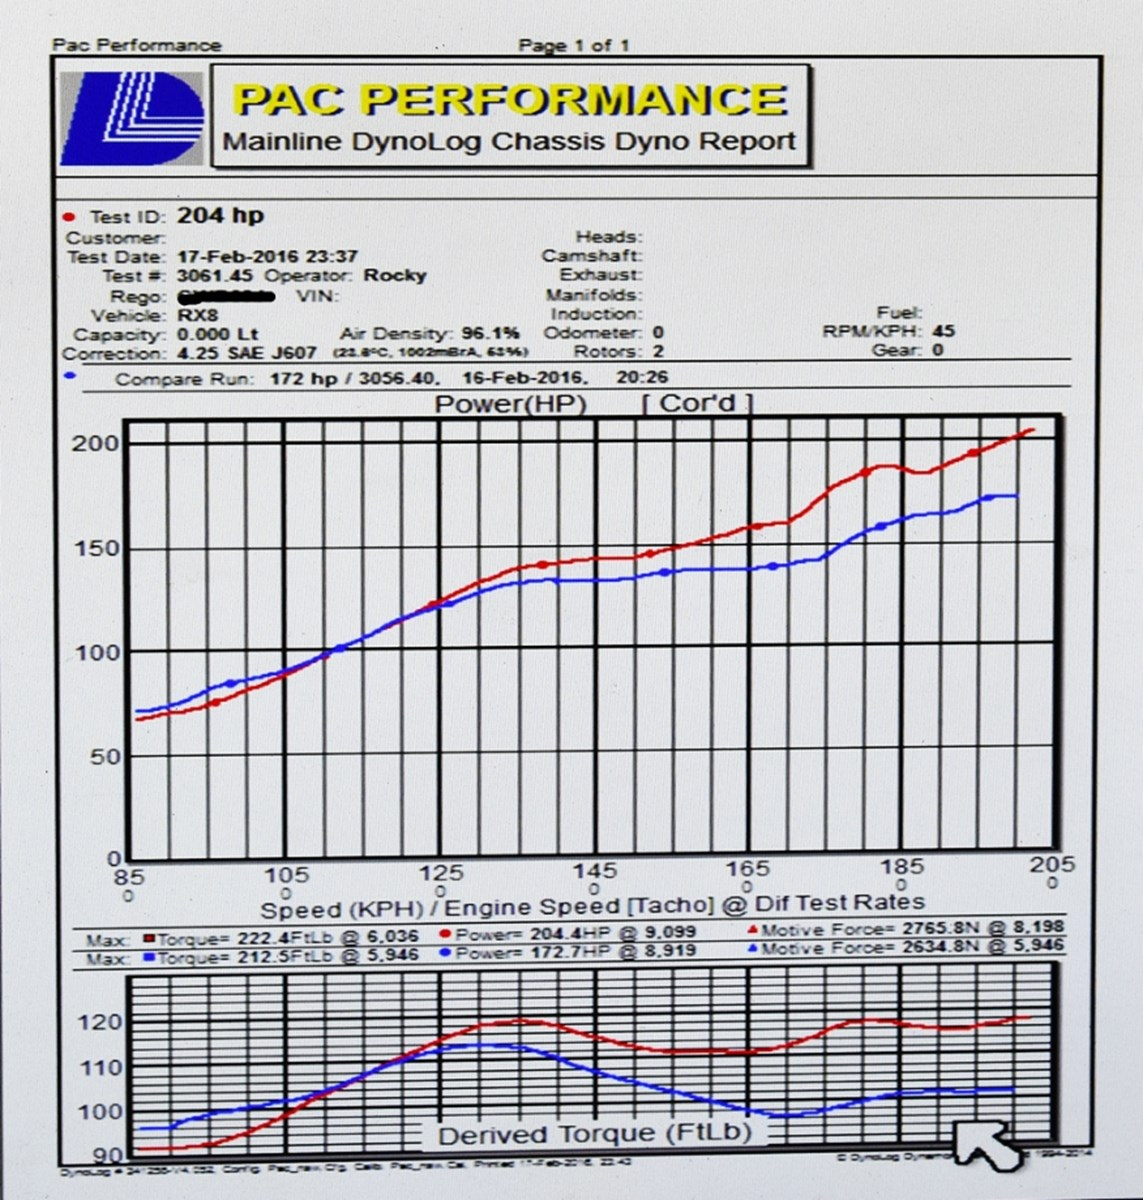 Breaking News Rx8 Stage 2 Power Upgrade Hits 200 Hp Pac 120 Force Engine Diagram For The Is Strapped On To Our Mainline Dyno Rocky Then Flashes Ecu Allowing Him Tweak Tune And Take Full Advantage Of Upgrades